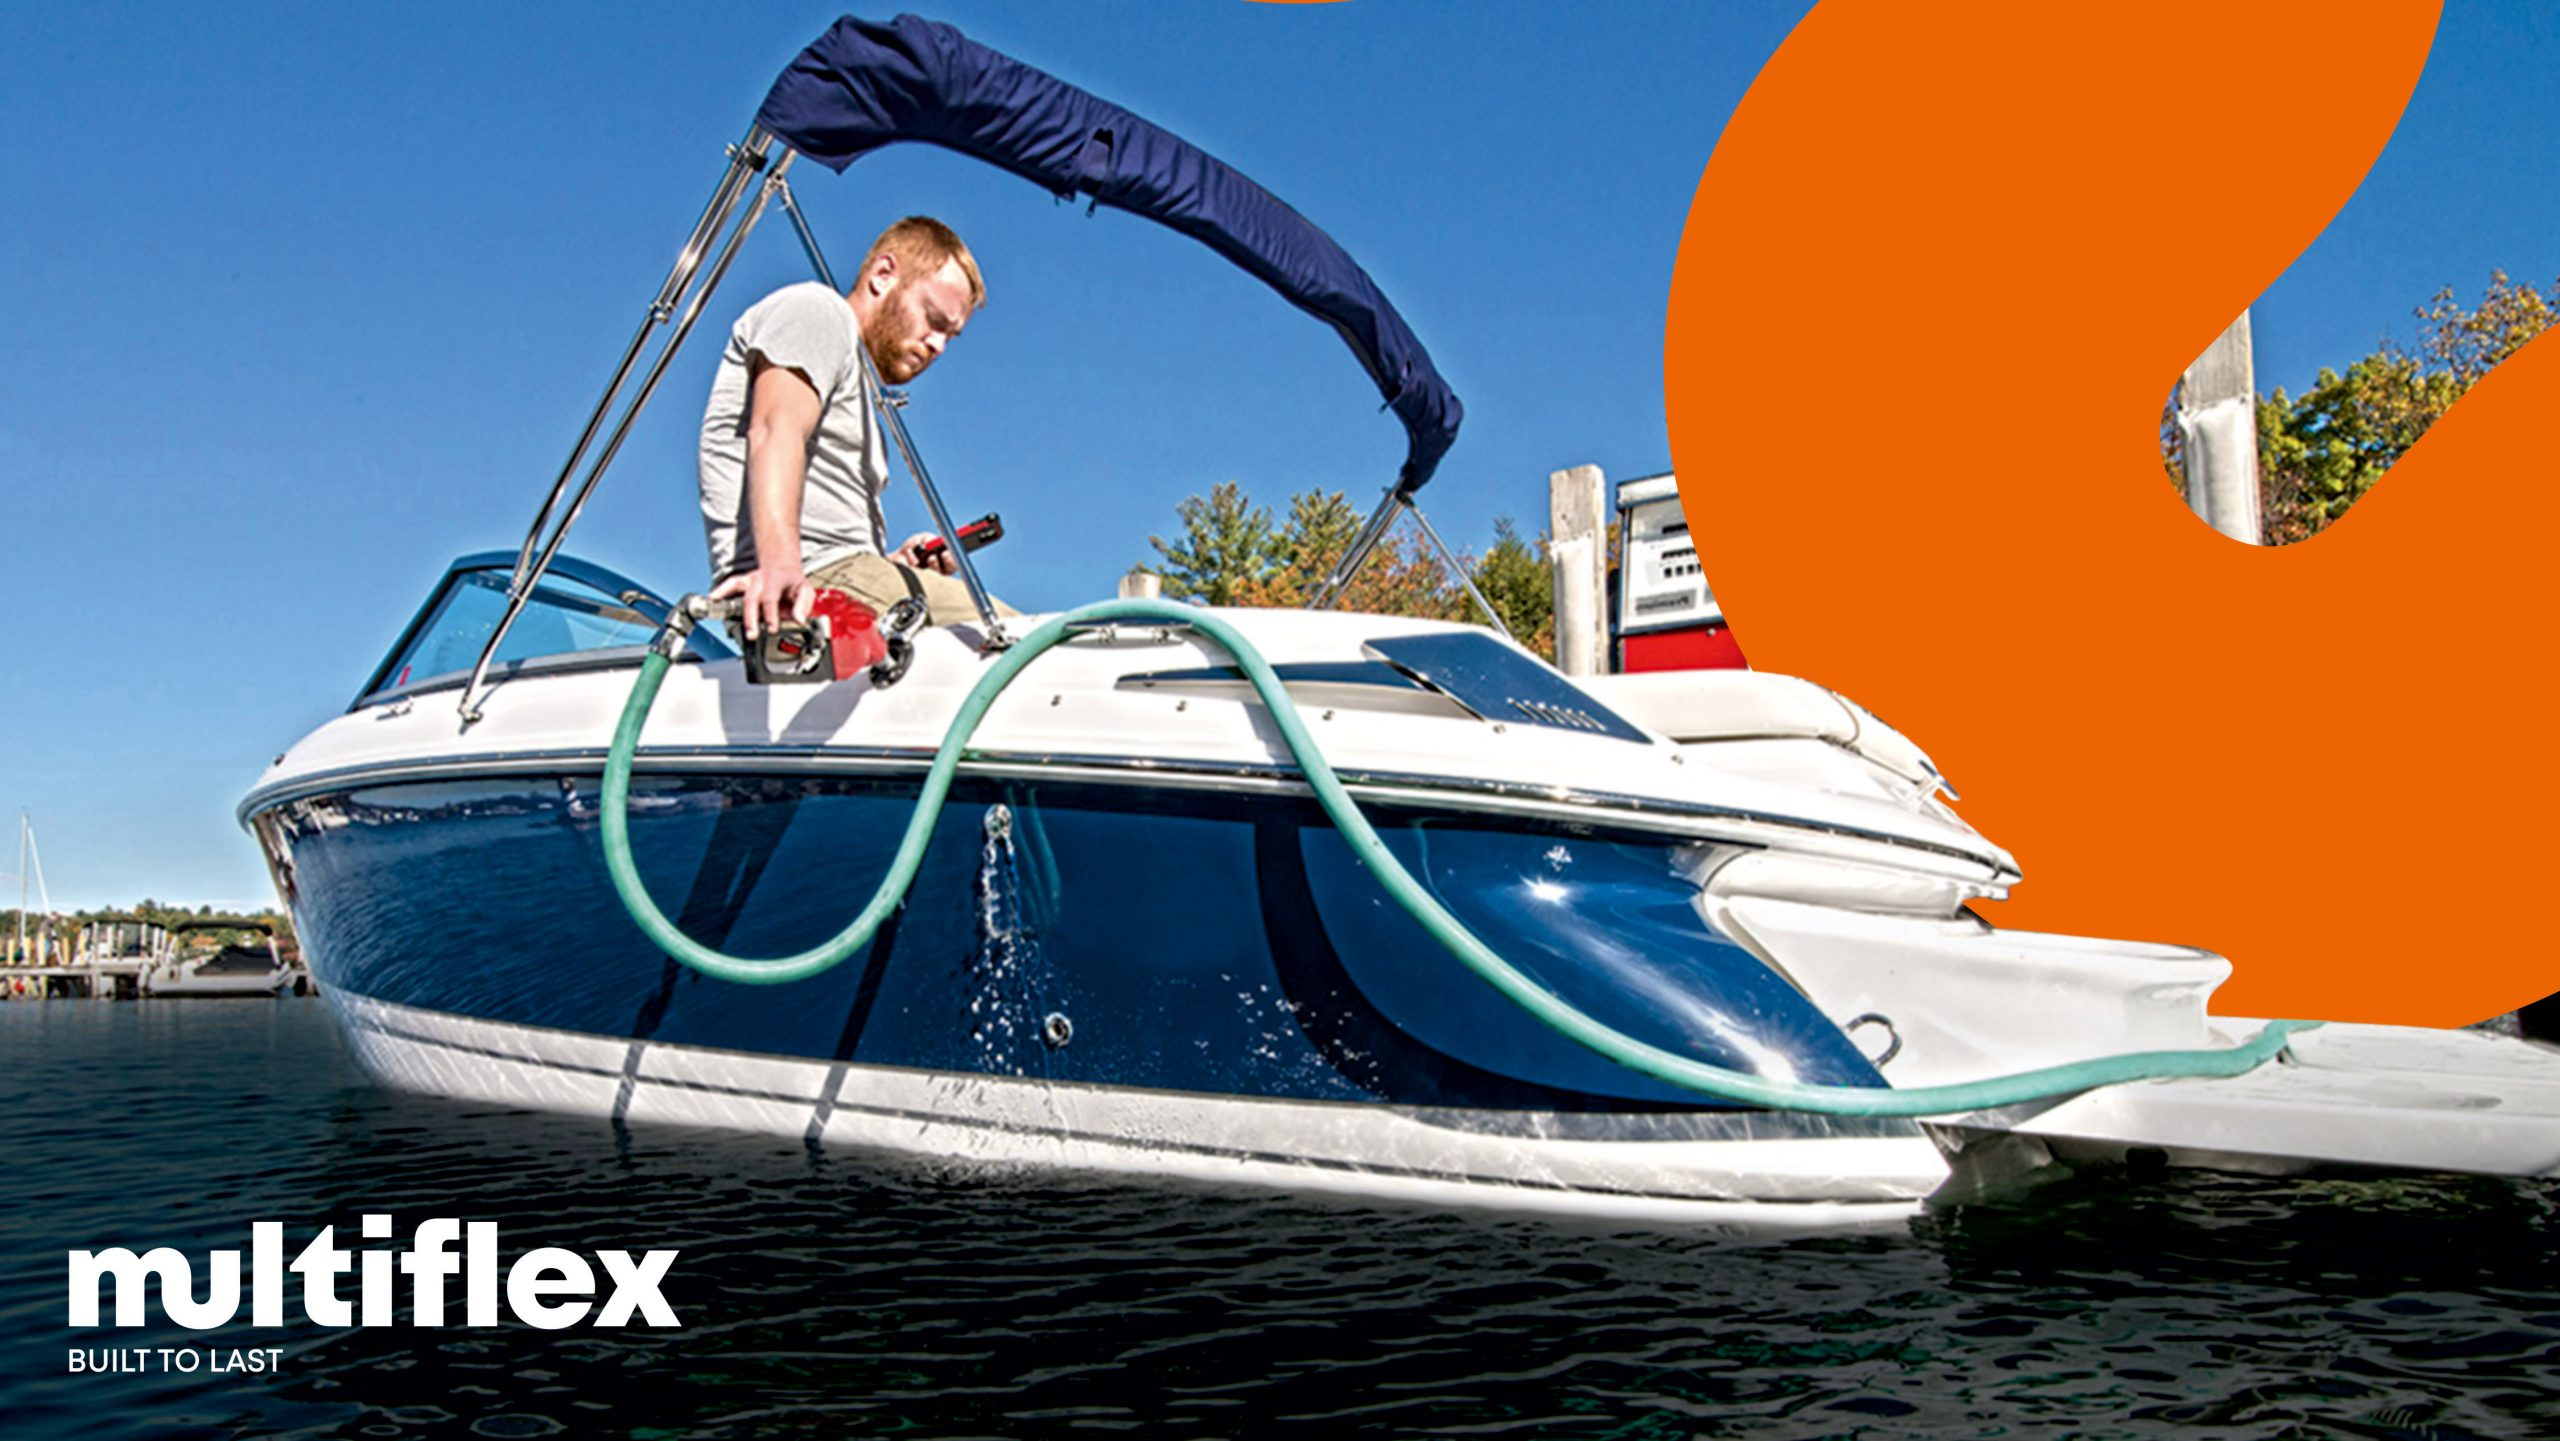 11 Best Ways to Save Fuel While Boating!